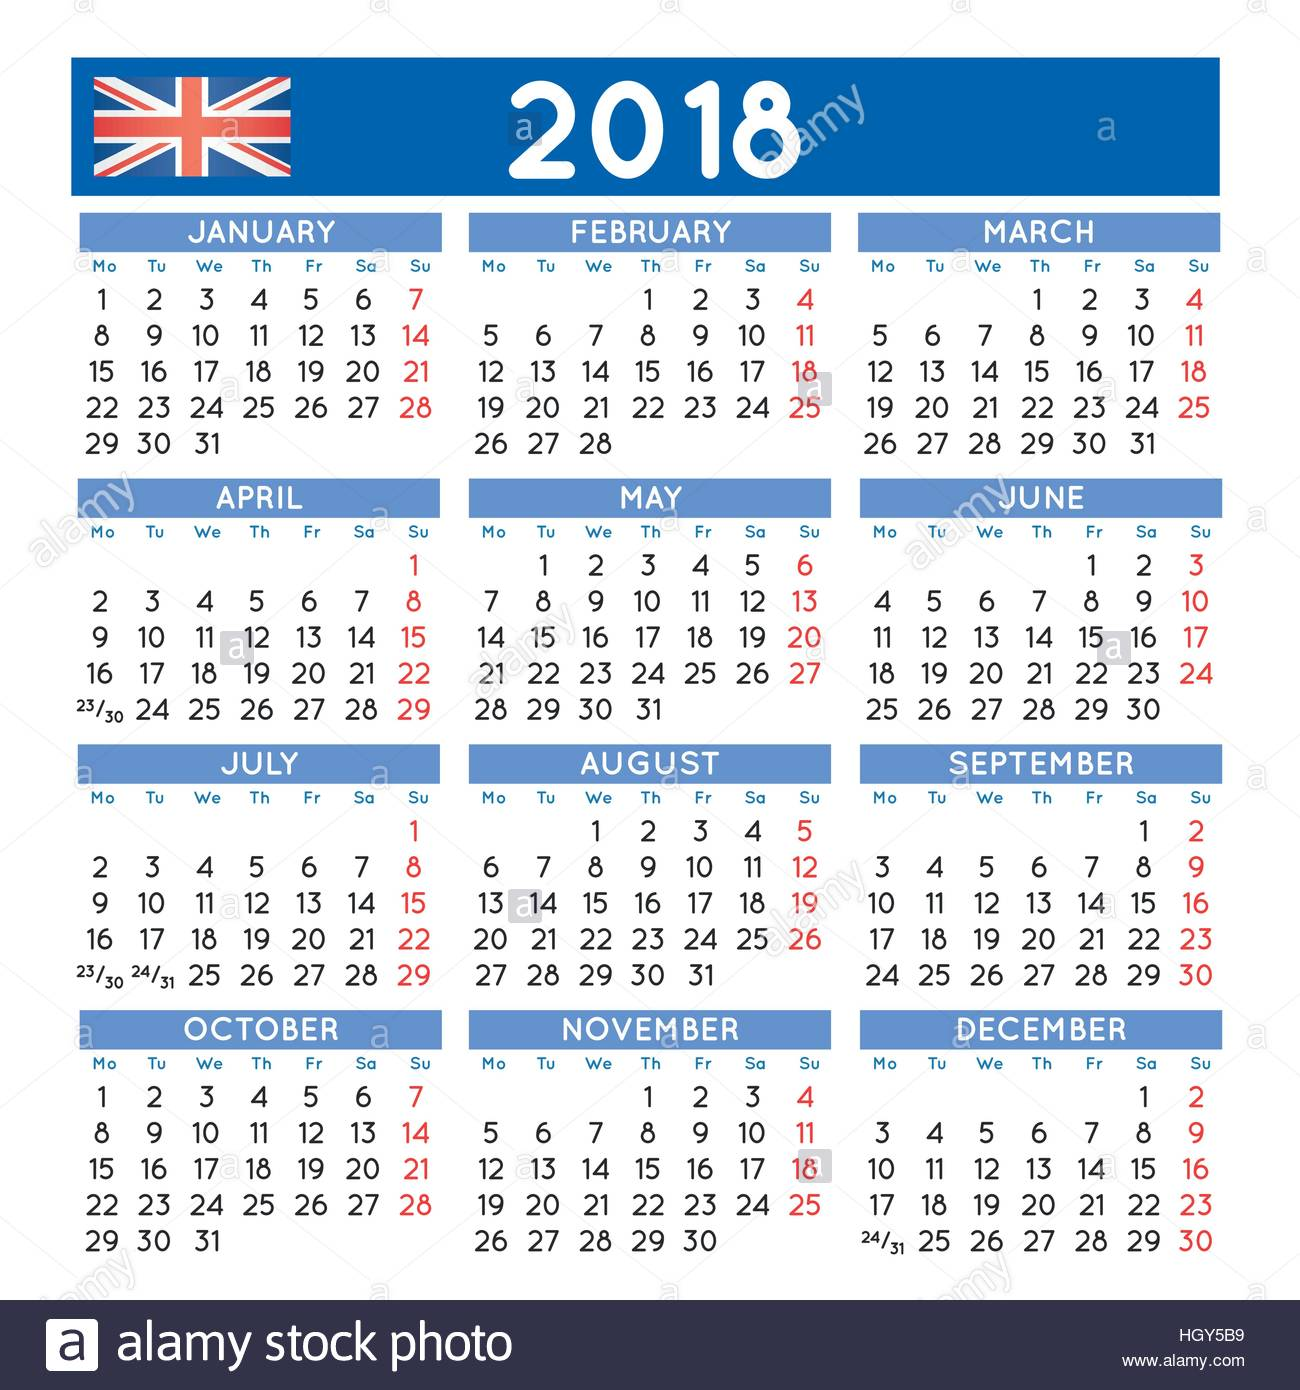 Free Download Yearly Printable calendar 2018 in PDF, 15+ editable